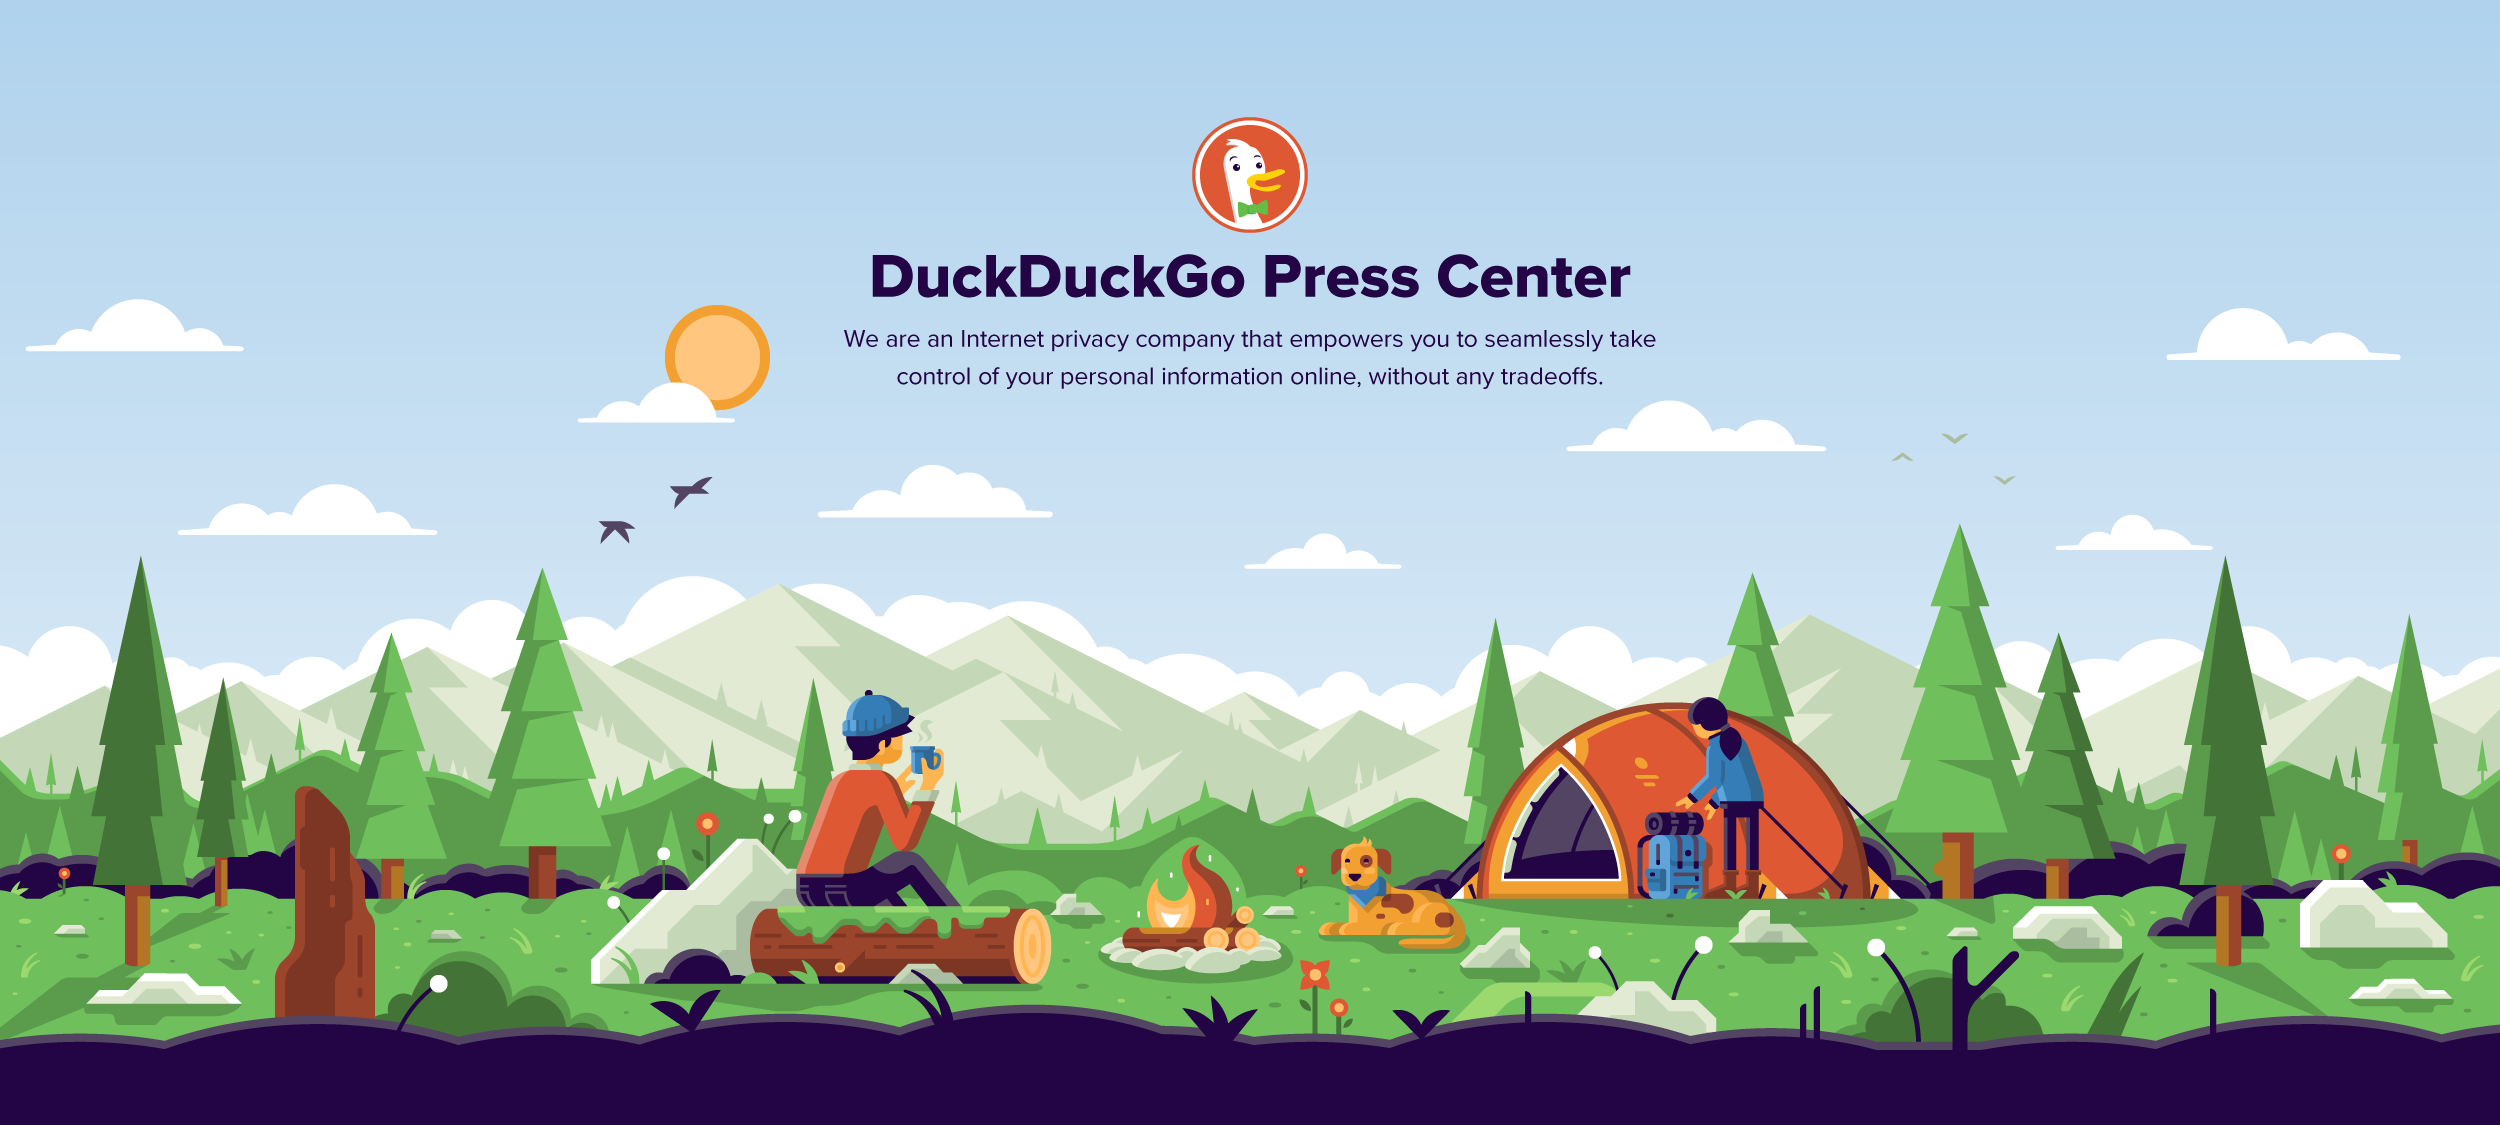 Matt Anderson DuckDuckGo hero illustration campers at campfire.